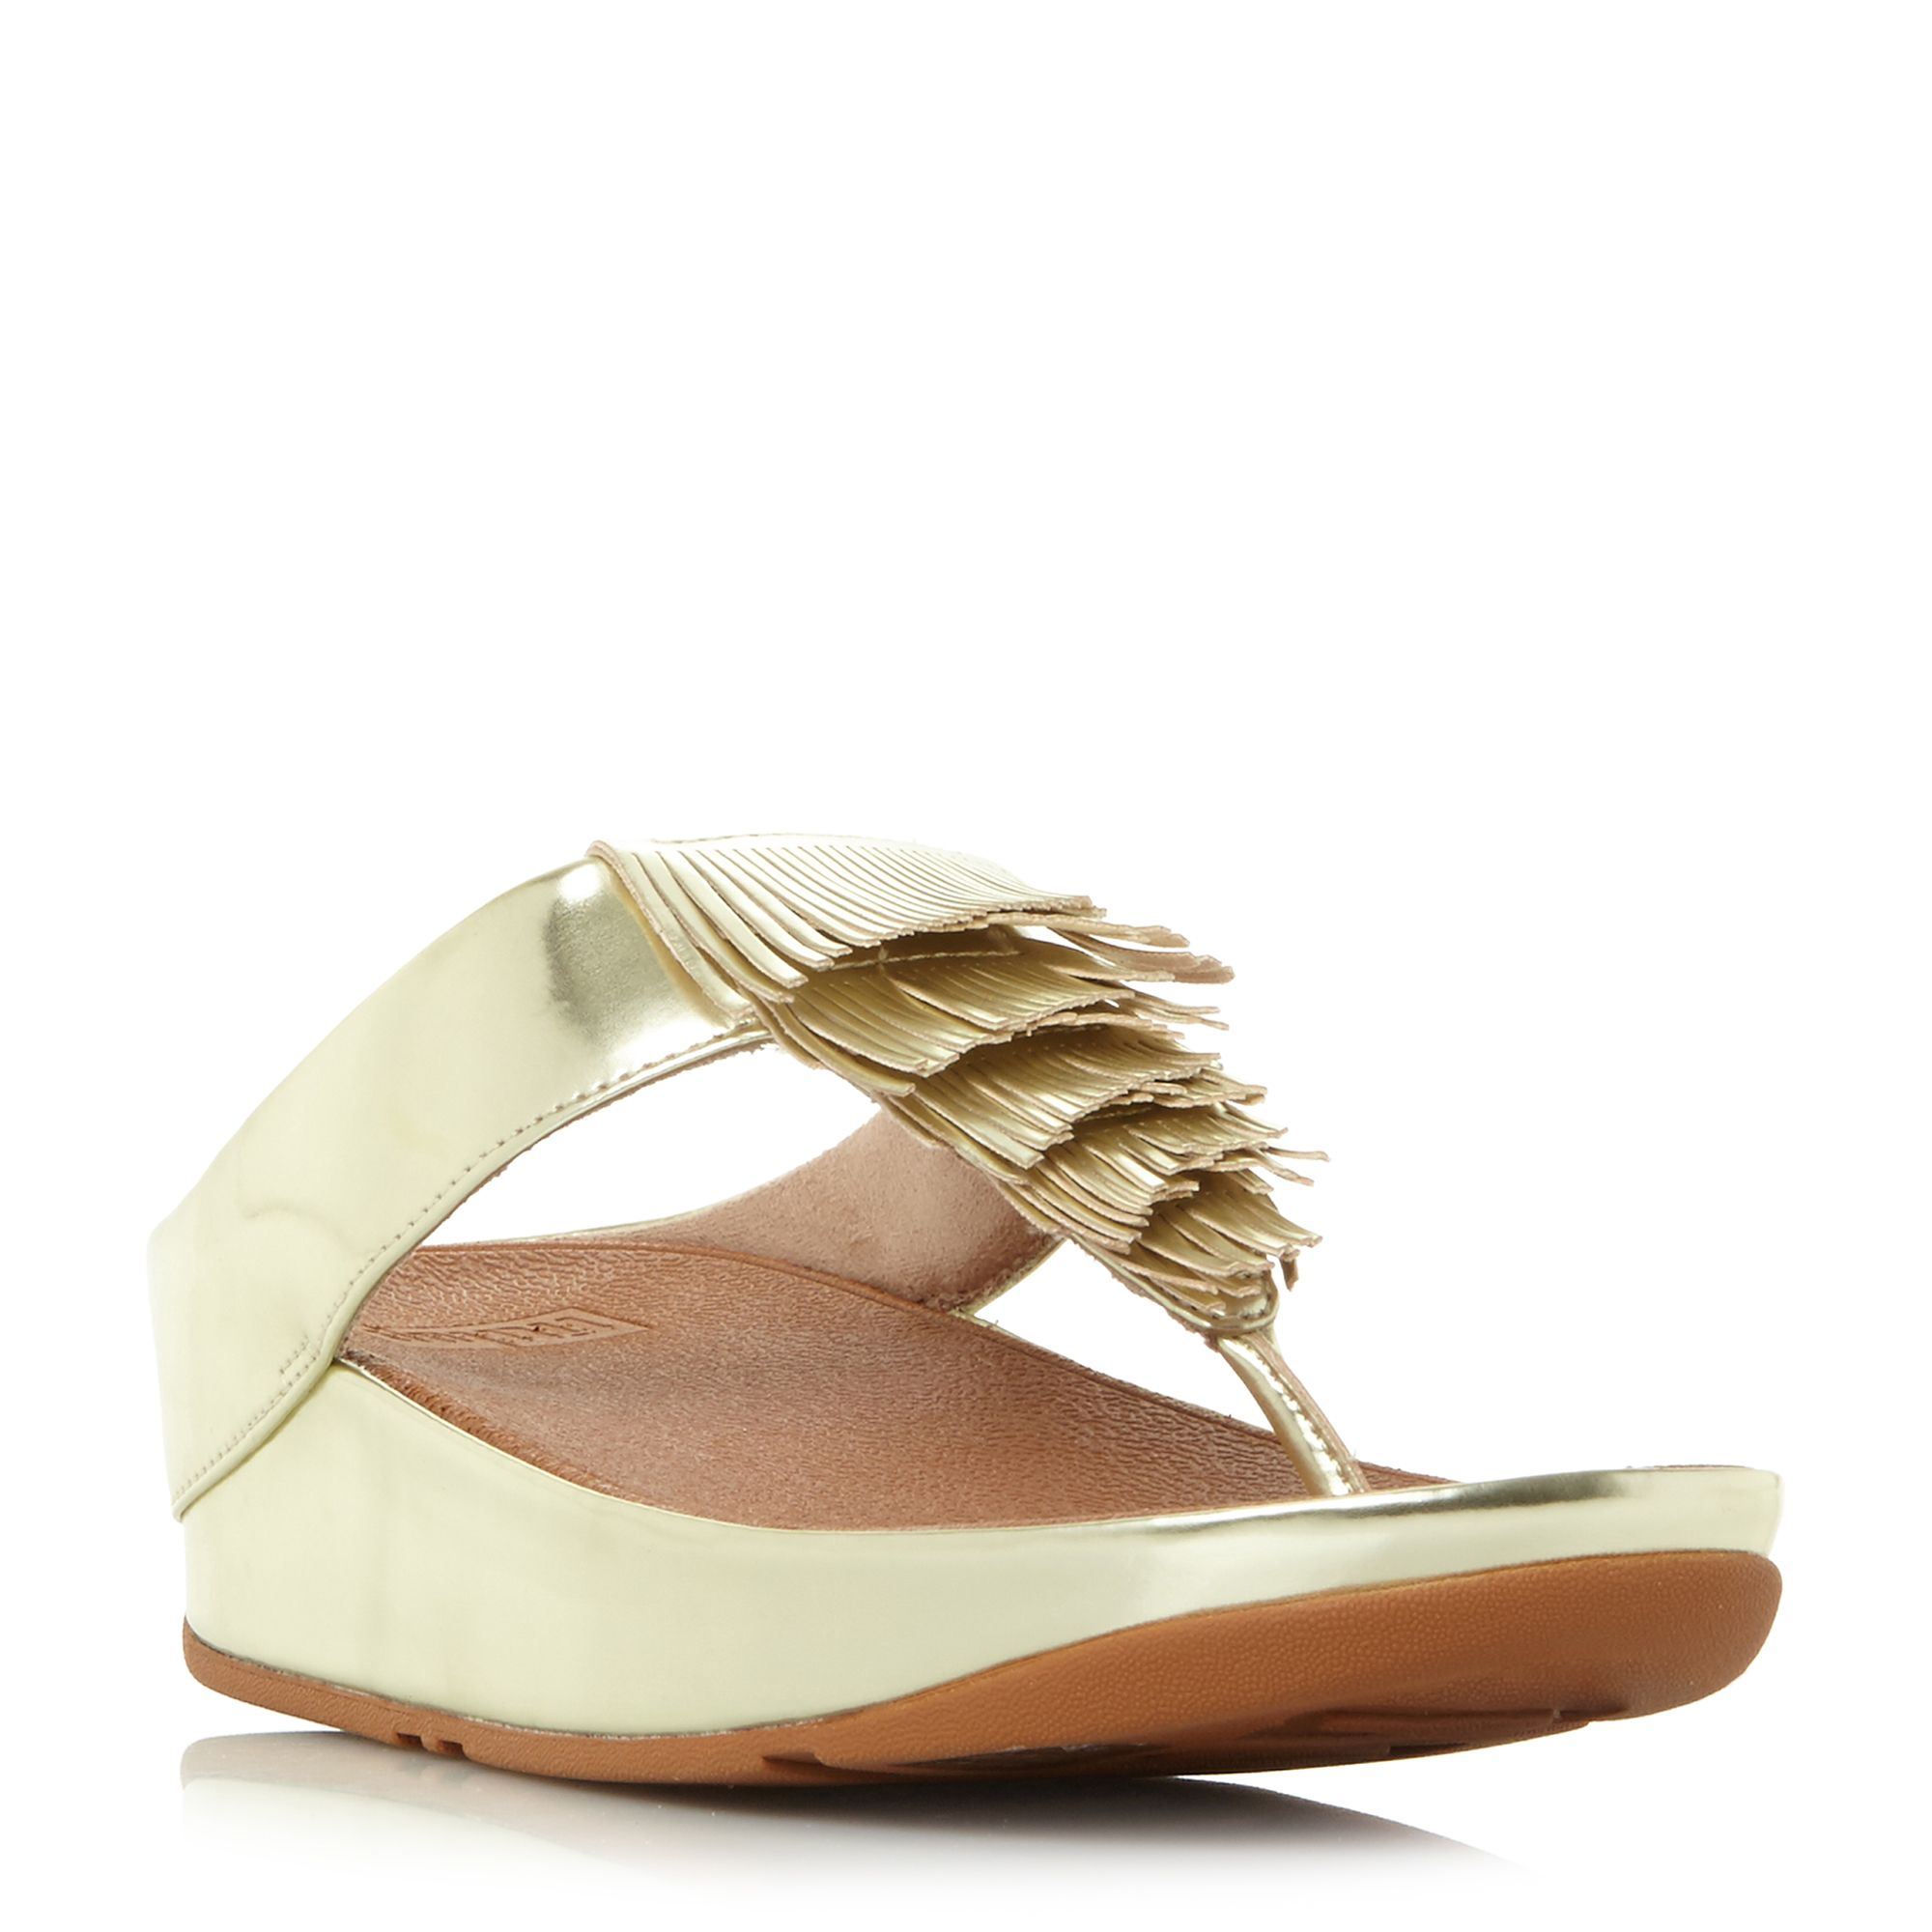 FitFlop Cha cha wedge sandals, Gold